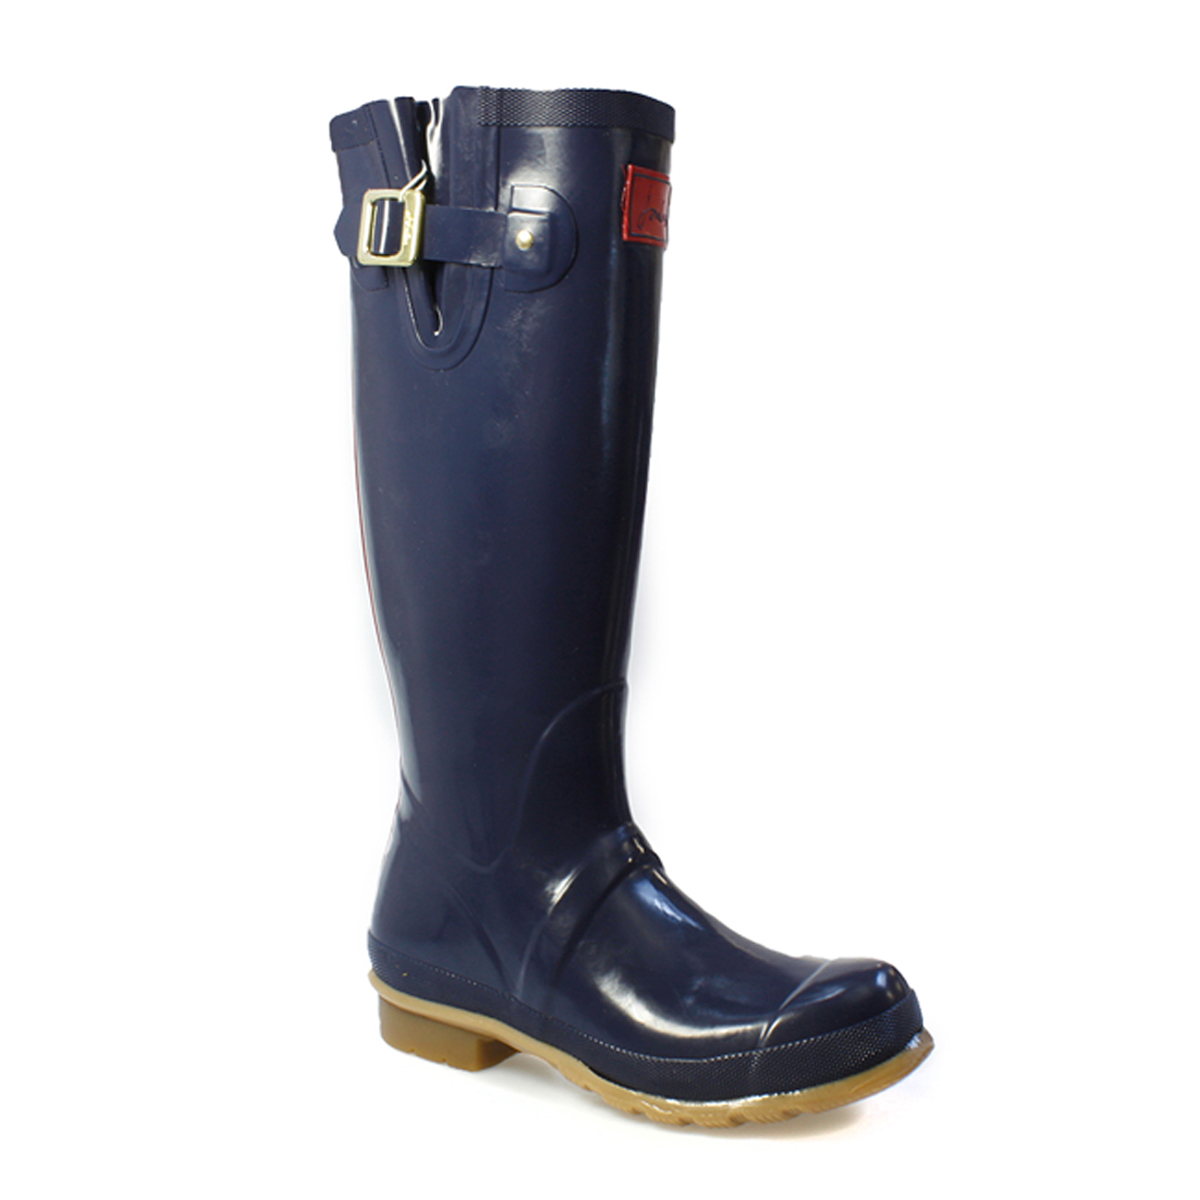 joules womens wellies glossy navy blue rubber boots